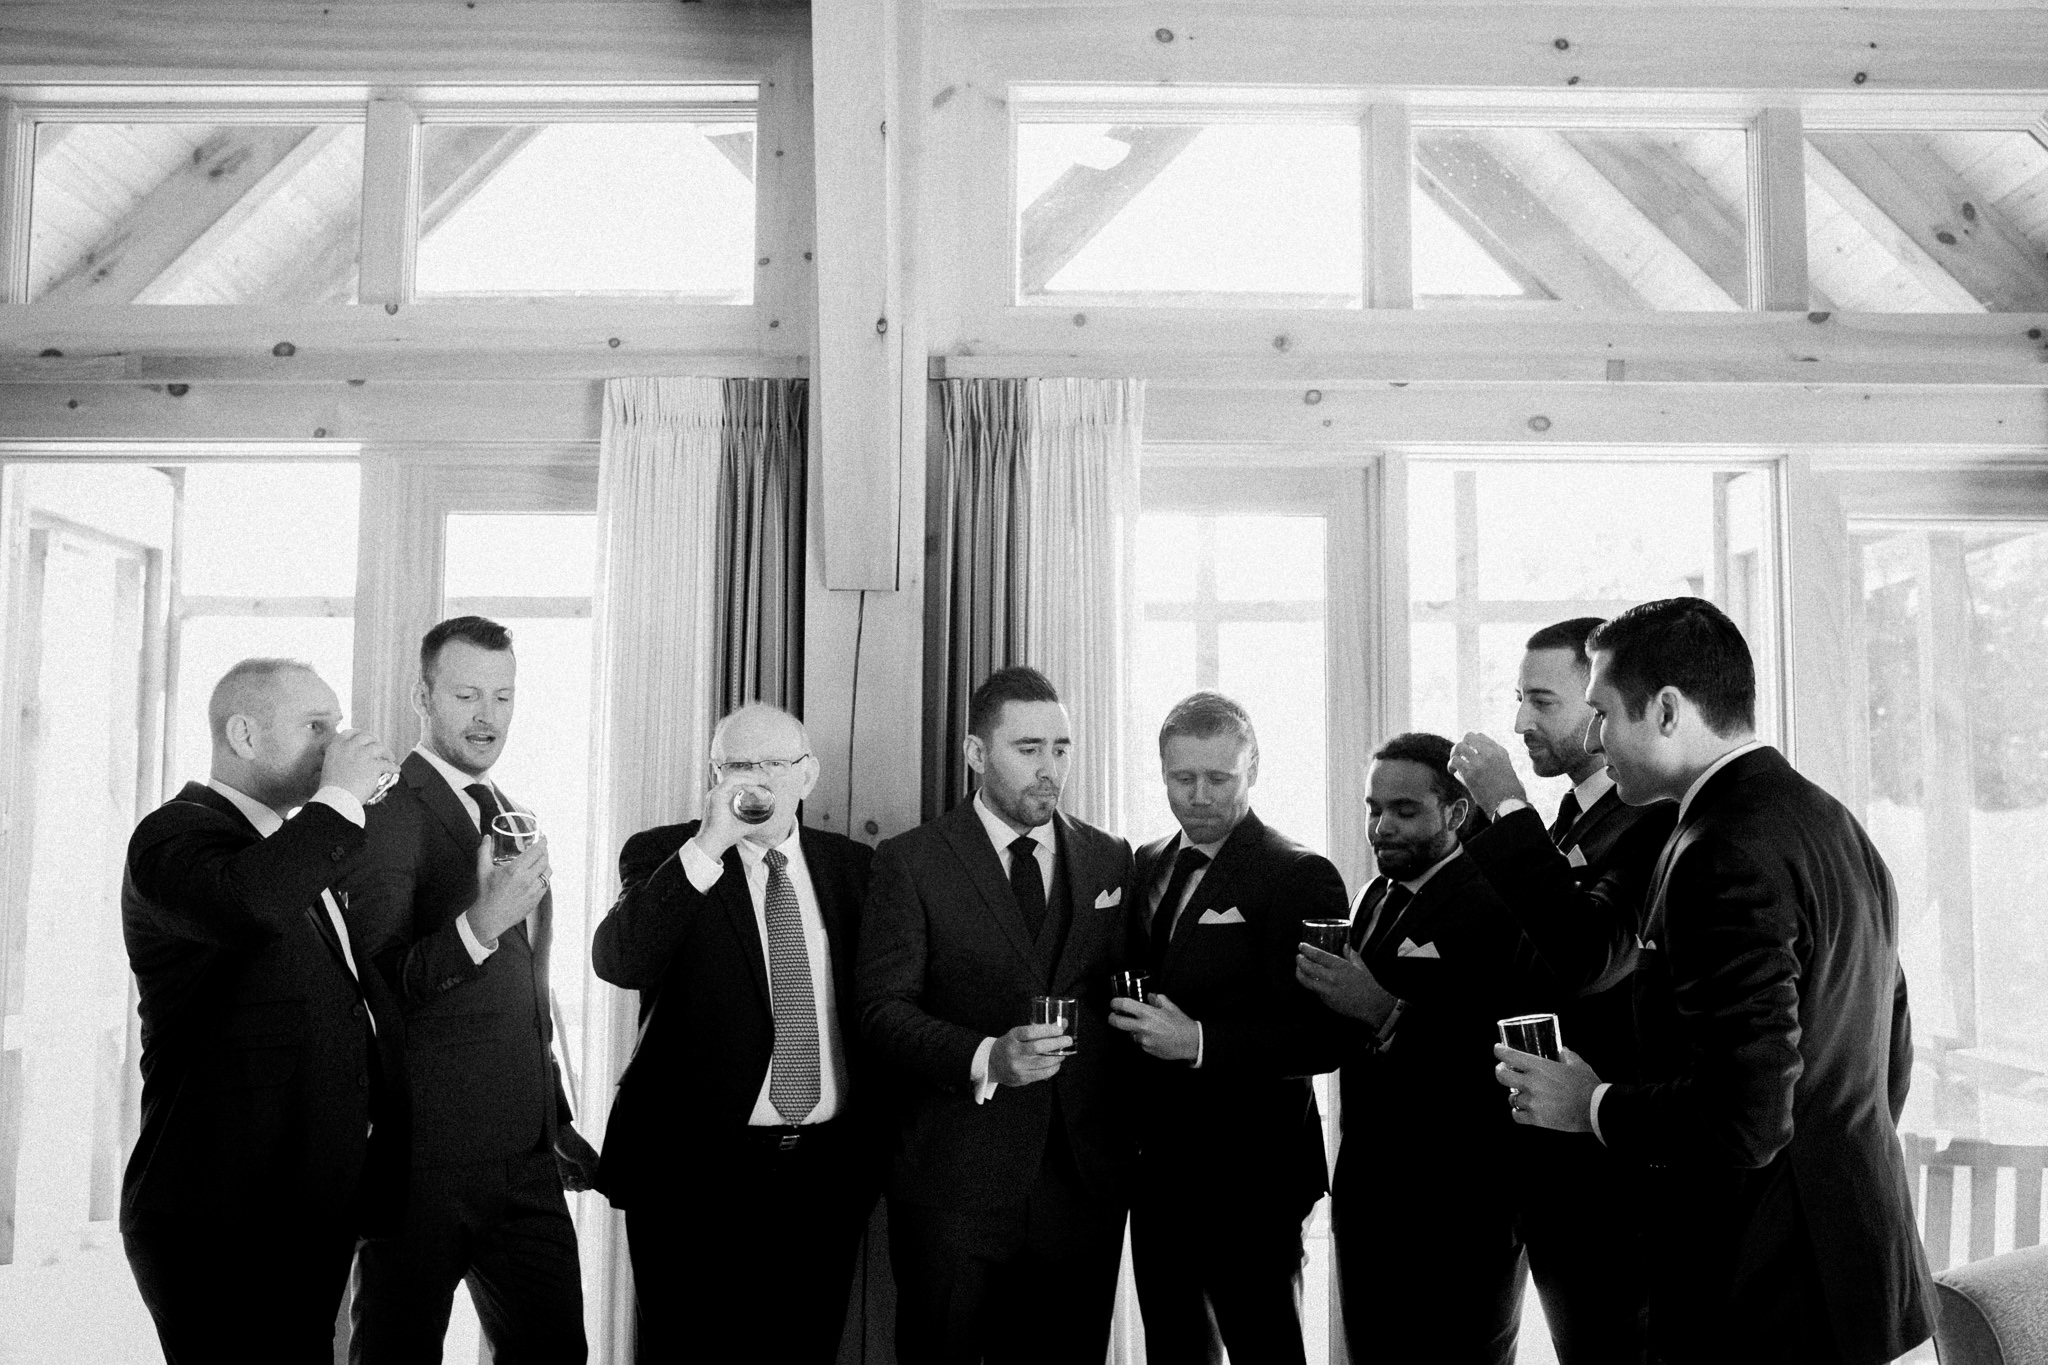 Muskoka lakeside wedding at Port Cunnington Lodge by Max Wong Photo (10)